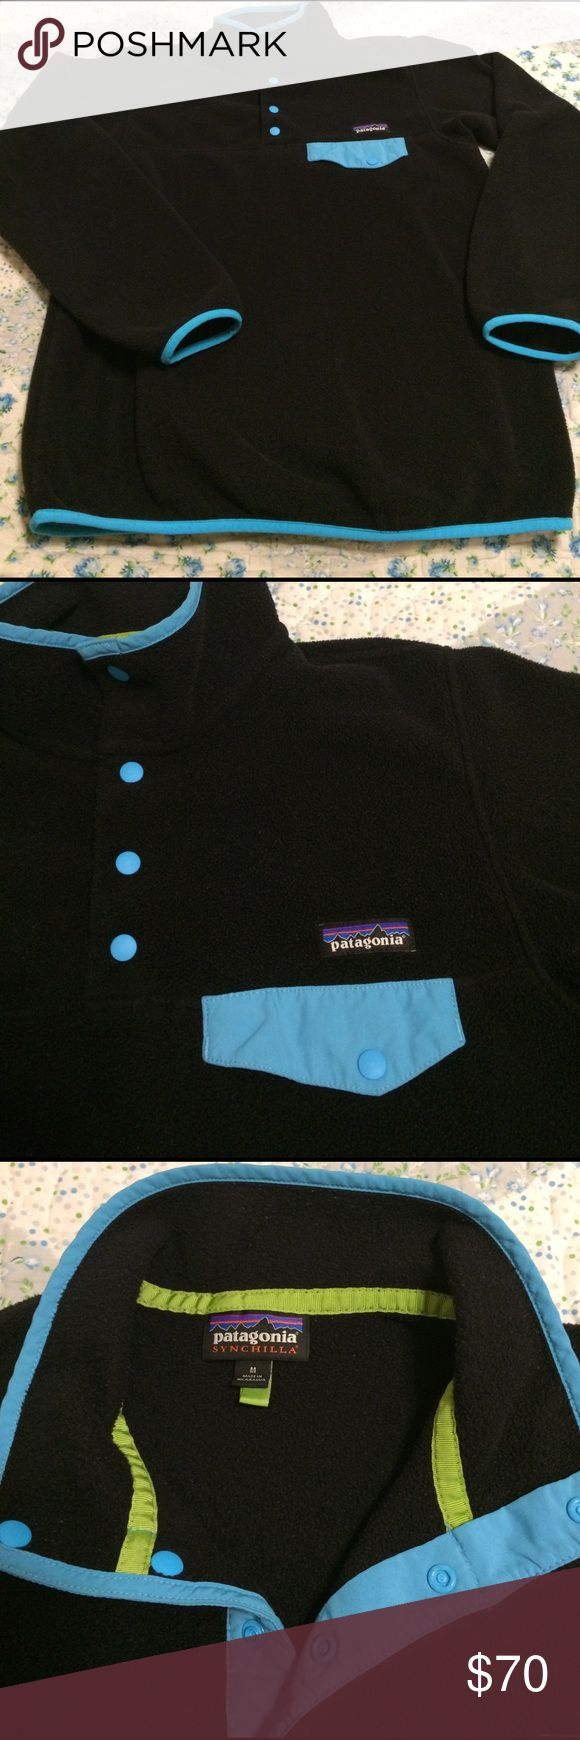 Patagonia Synchilla Fleece Pullover EUC classic Patagonia Synchilla Fleece Pullover. Men's Medium/Women's Large. Black body with bright turquoise contrasting pocket flap & trim. Extremely comfortable and provides just the right level of warmth for cool weather hikes or for layering when hitting the slopes. The interior material/care tag has been cut out. Aside from that--excellent shape!! Patagonia Jackets & Coats